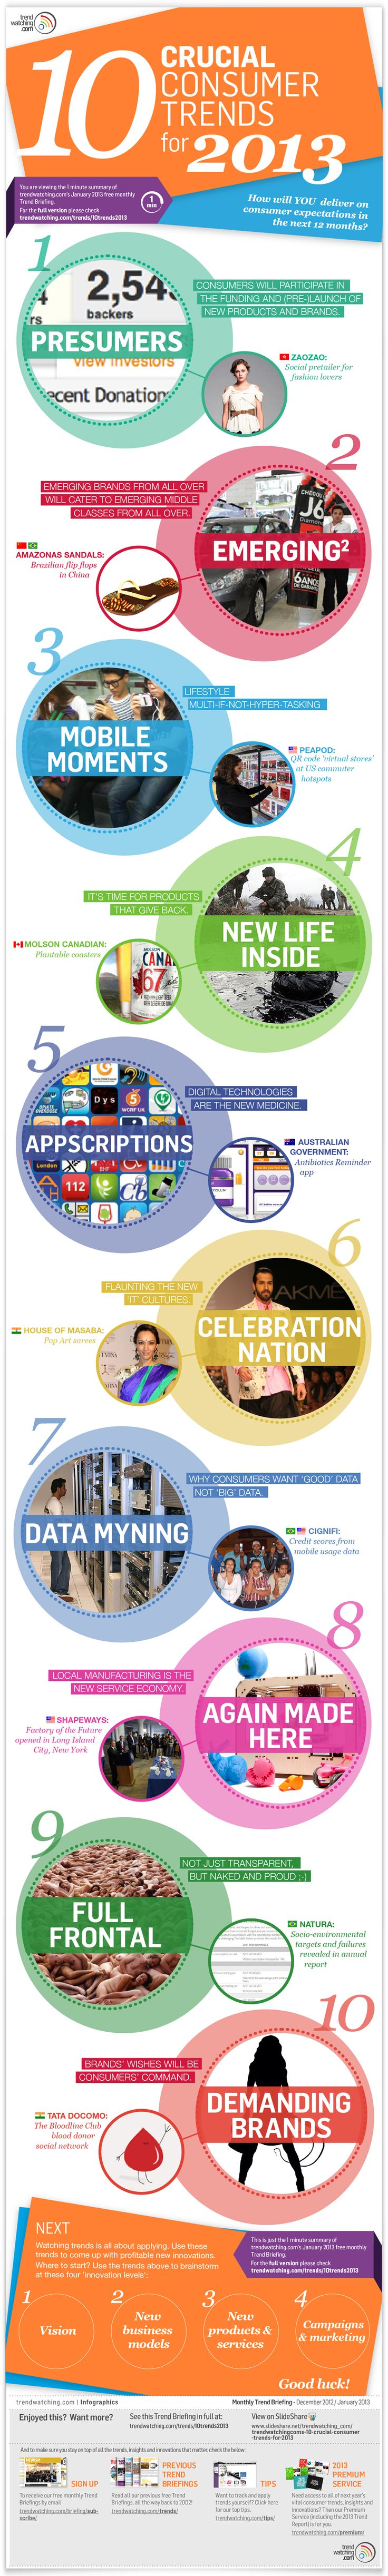 Hi All!  Here are 10 Crucial Consumer trends for 2013.  Interesting material!